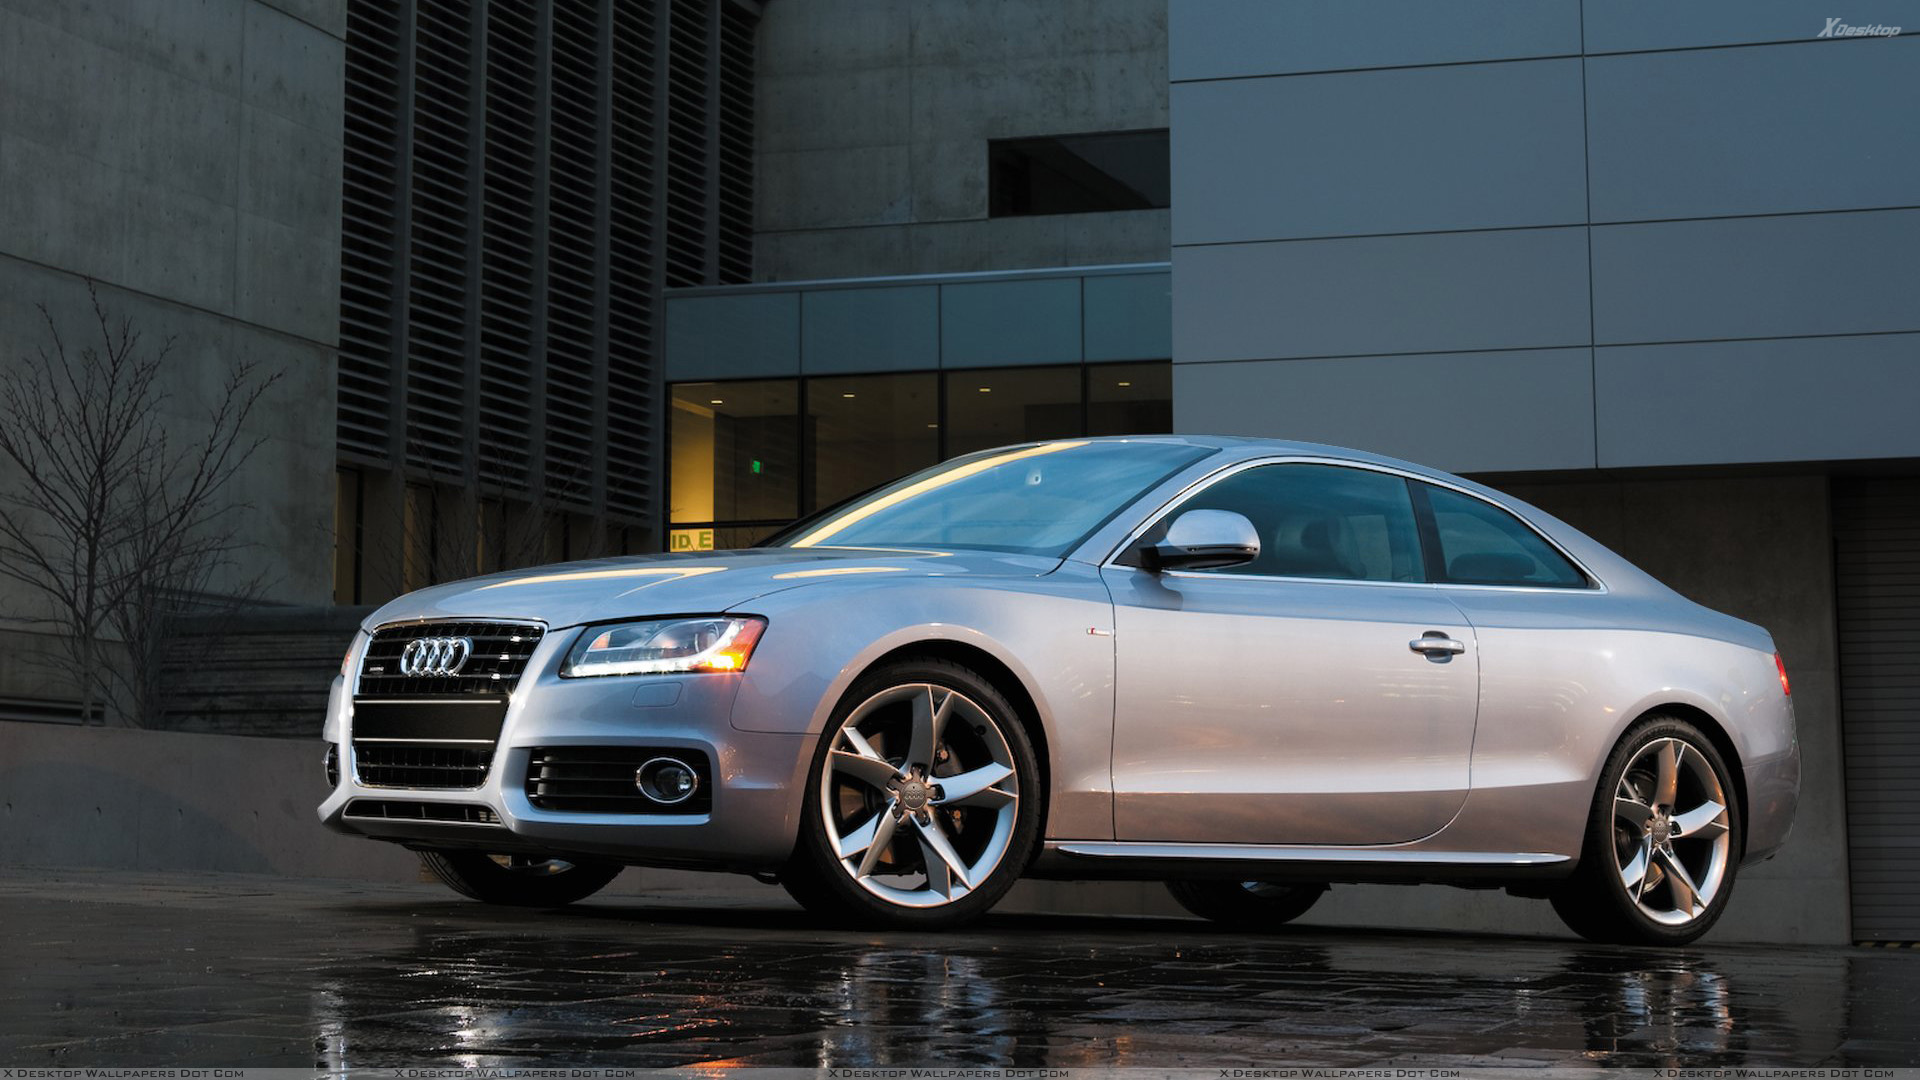 2012 audi a5 silver 200 interior and exterior images